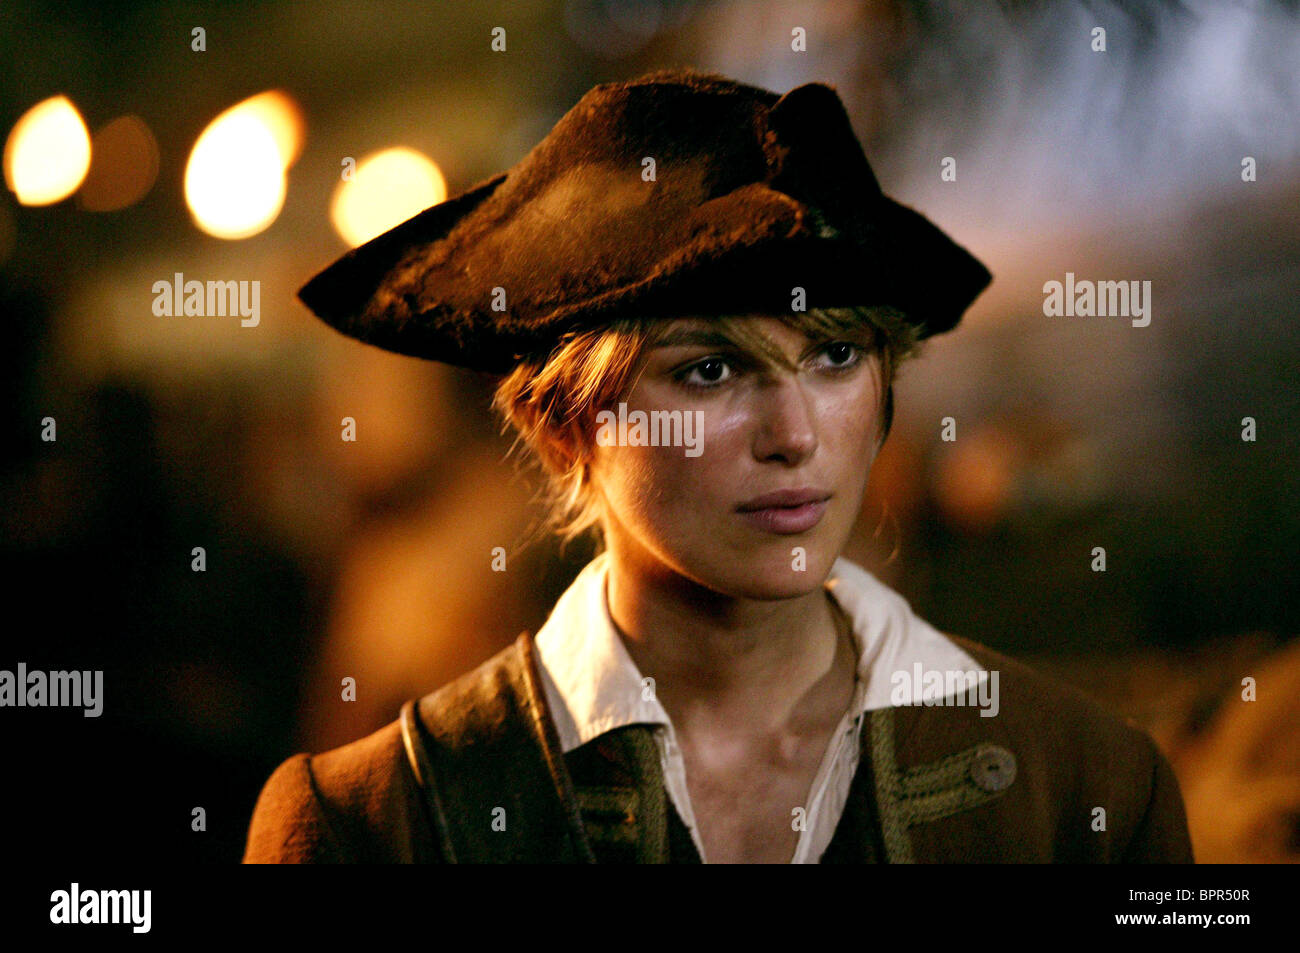 Keira Knightley Pirates Of The Caribbean Dead Man S Chest 2006 Stock Photo Alamy